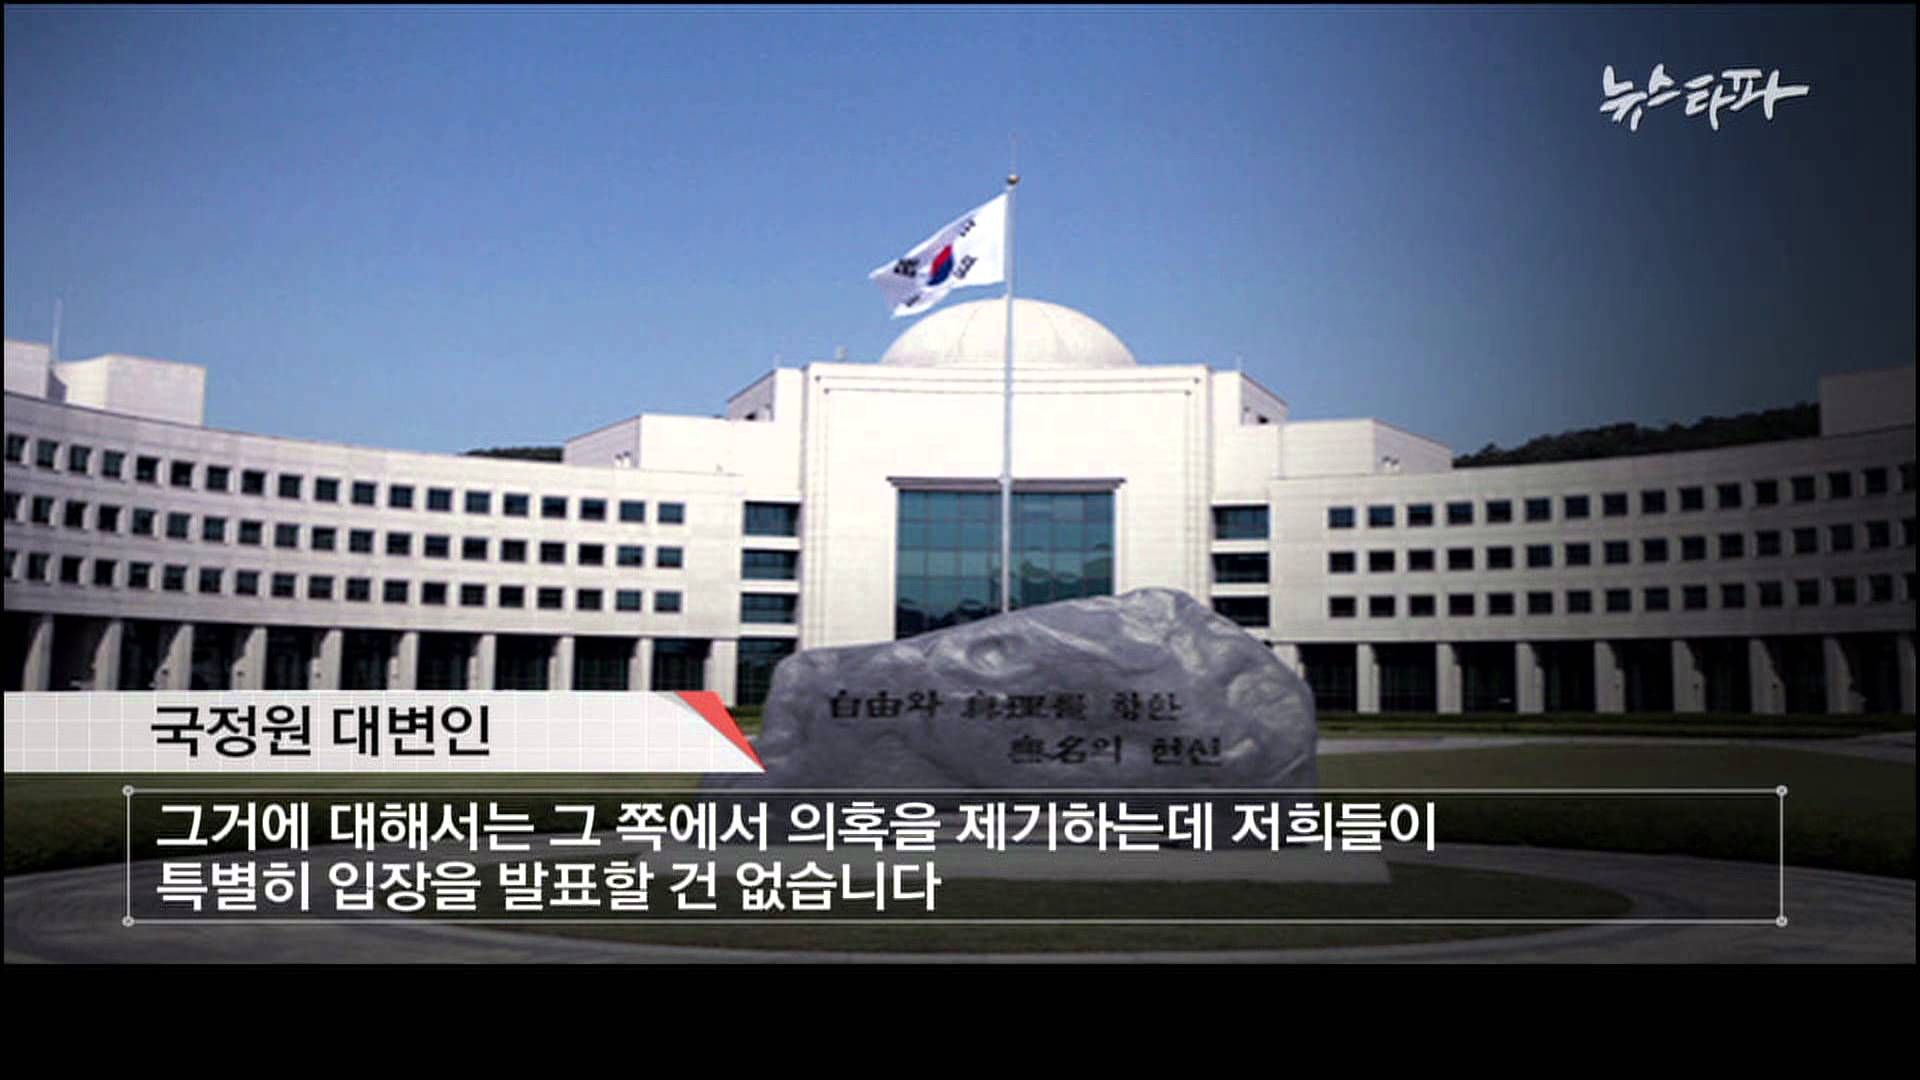 South Korean Spy Agency's Illegal Campaigning on SNS